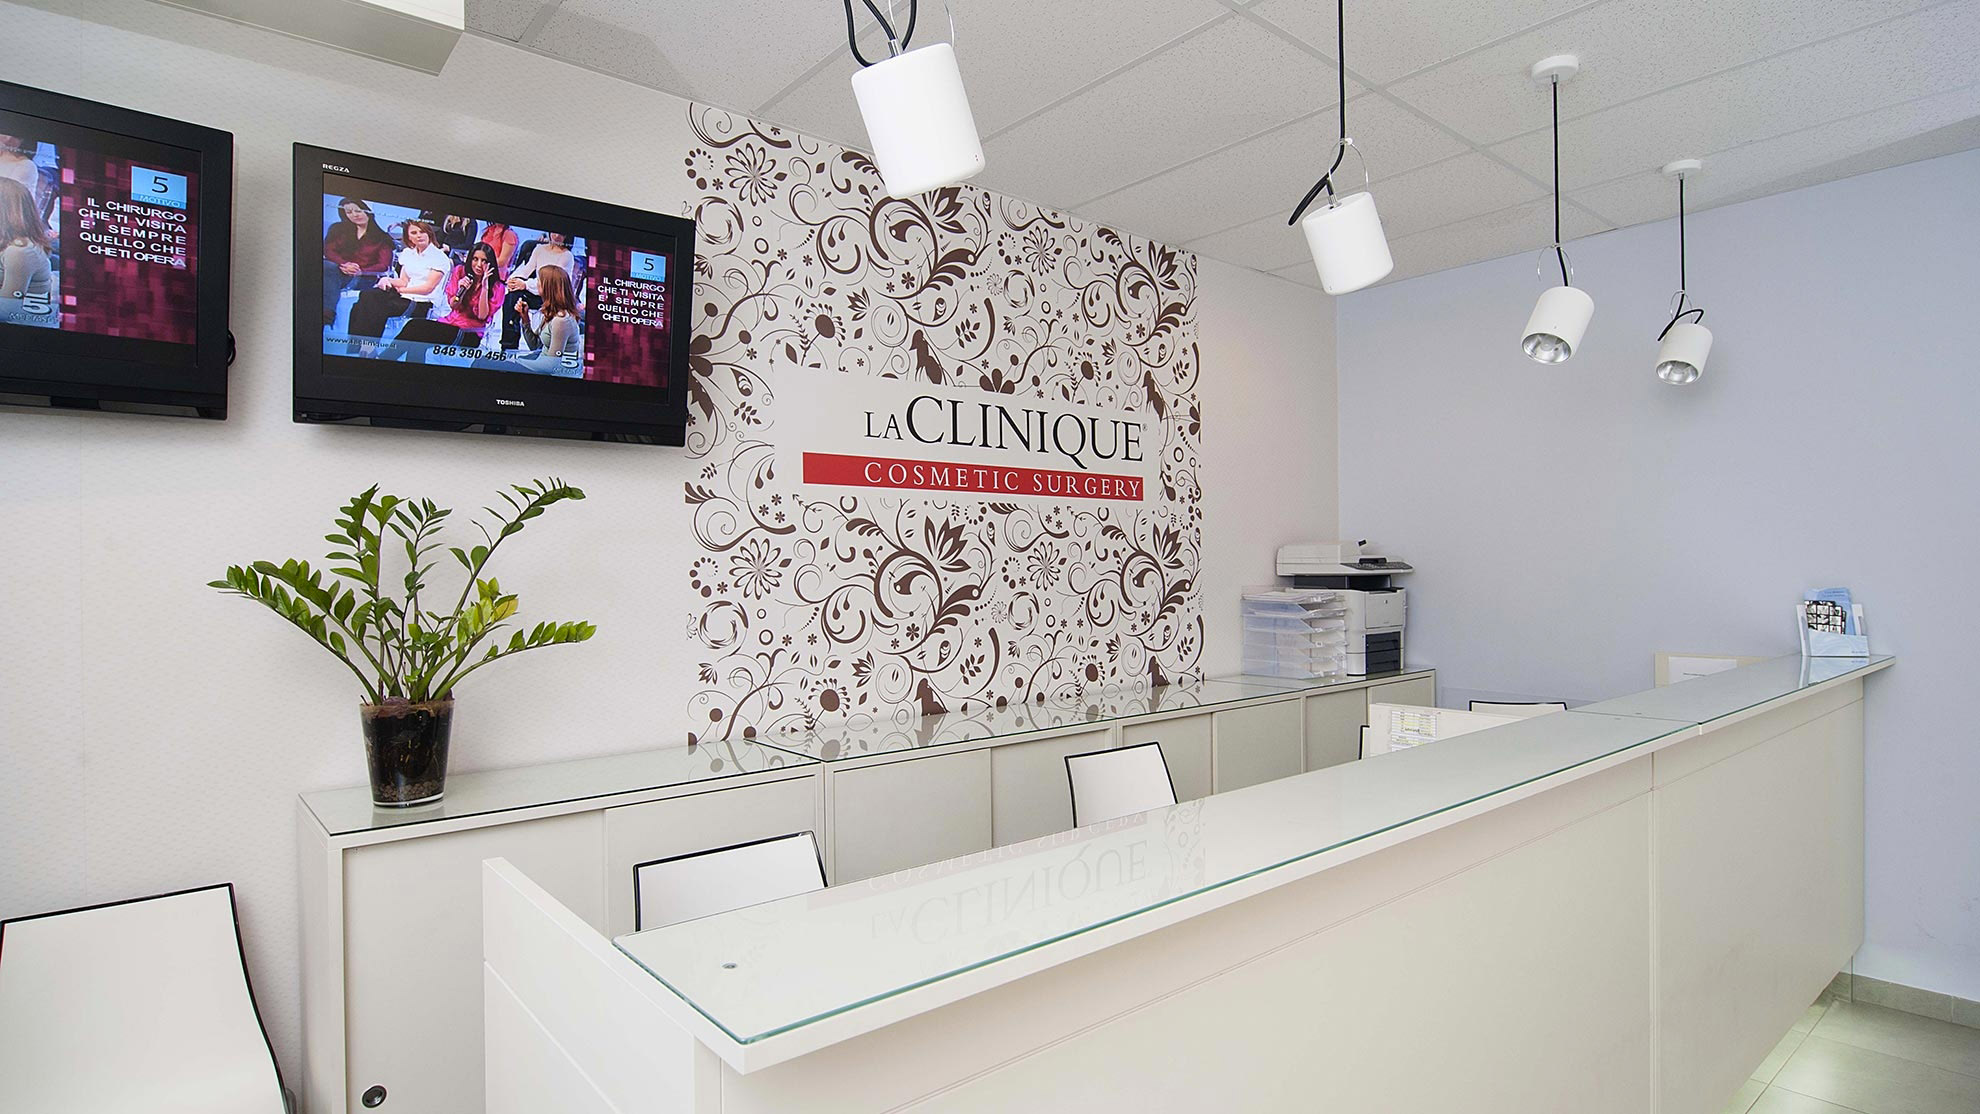 Concept La Clinique© Cosmetic Surgery 3